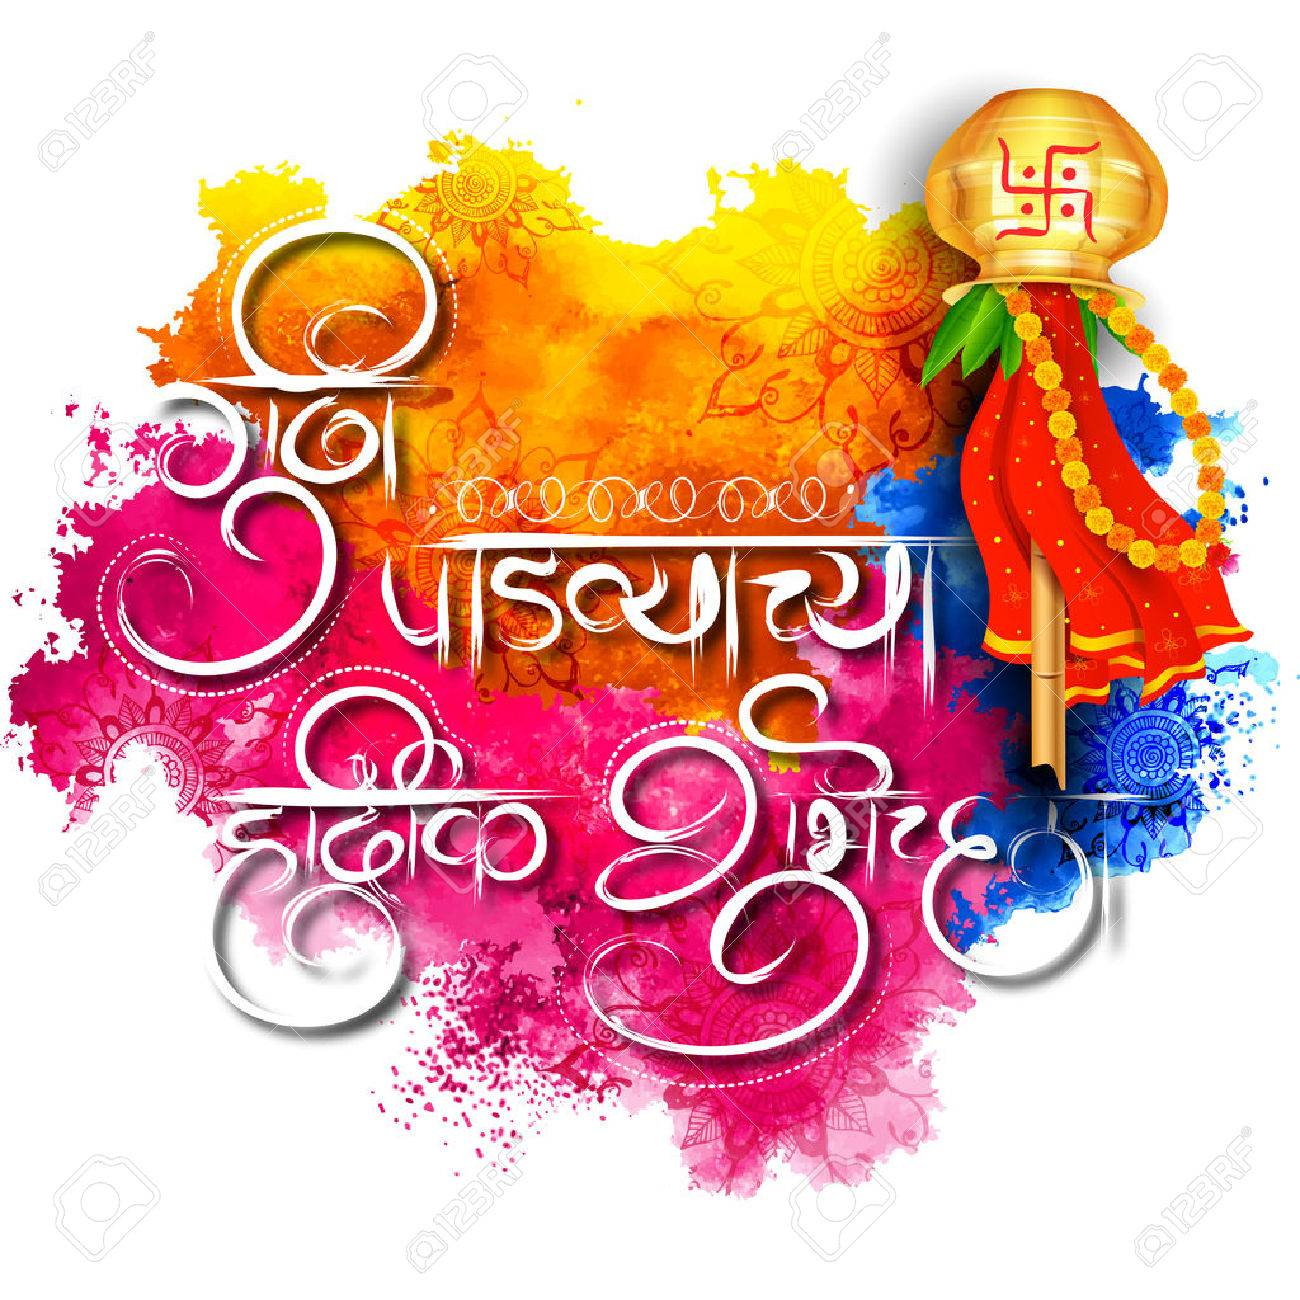 Illustration of gudi padwa lunar new year celebration of illustration of gudi padwa lunar new year celebration of india with message in marathi kristyandbryce Gallery